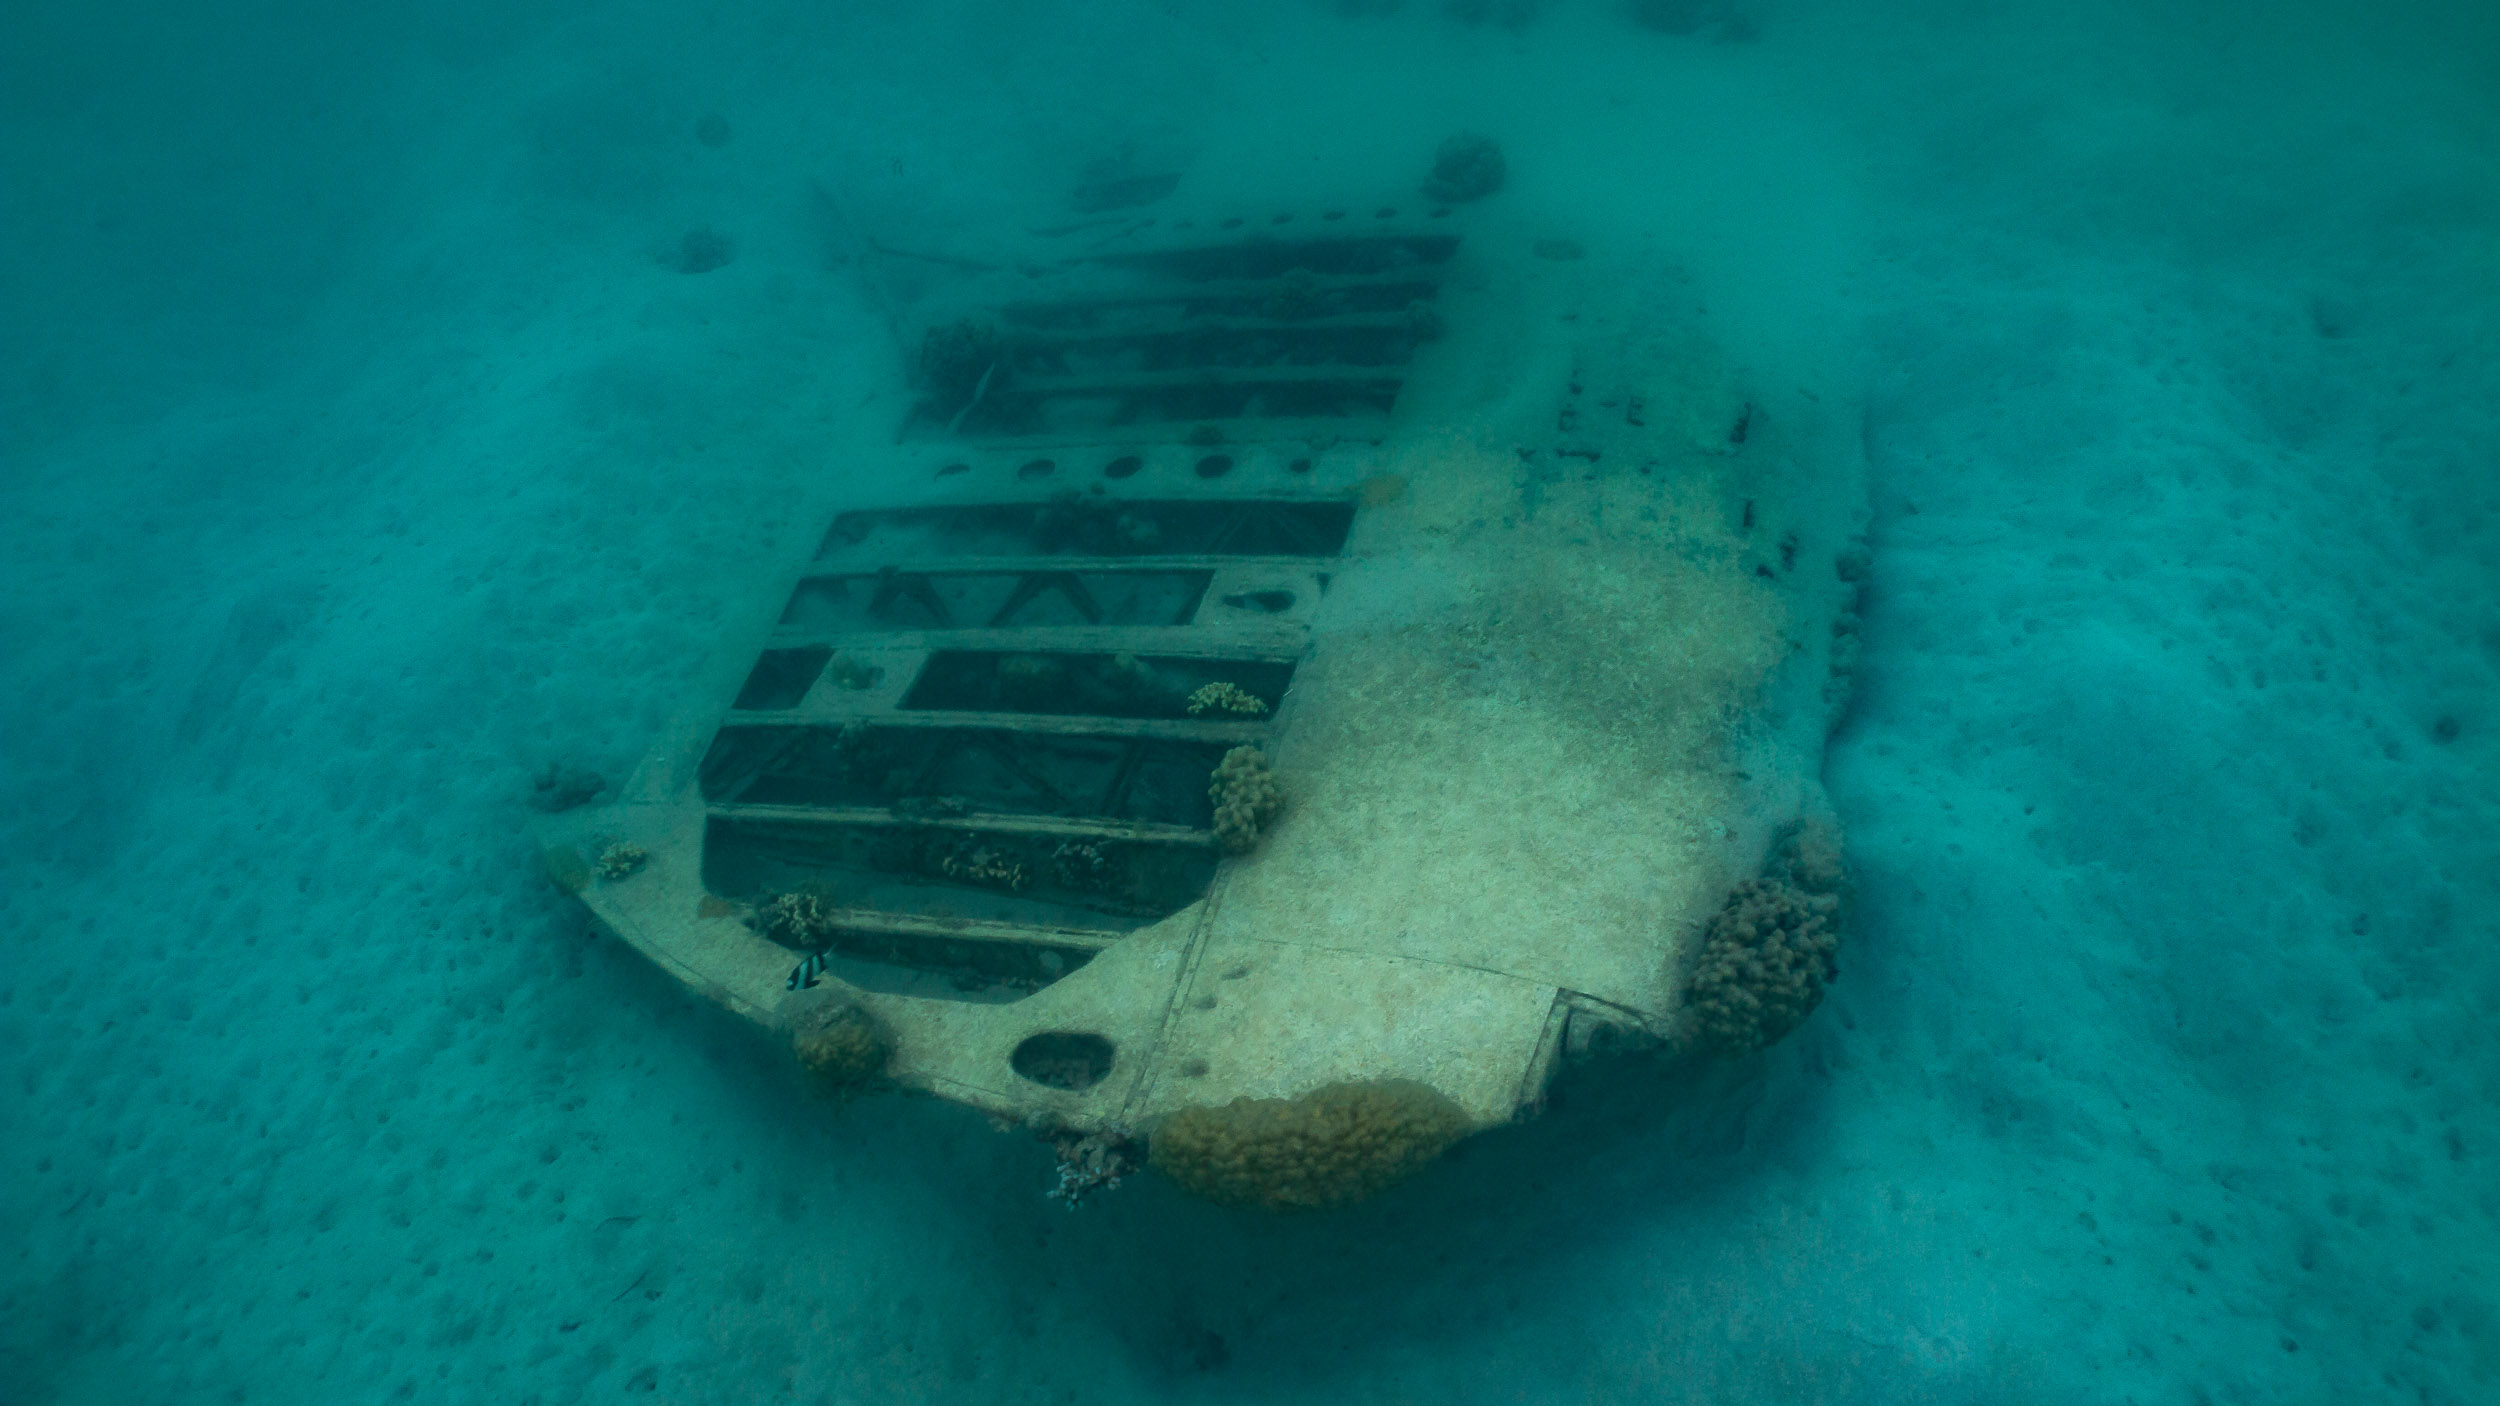 Photograph a World Ware 2 Plane Wreck in water (Wing)